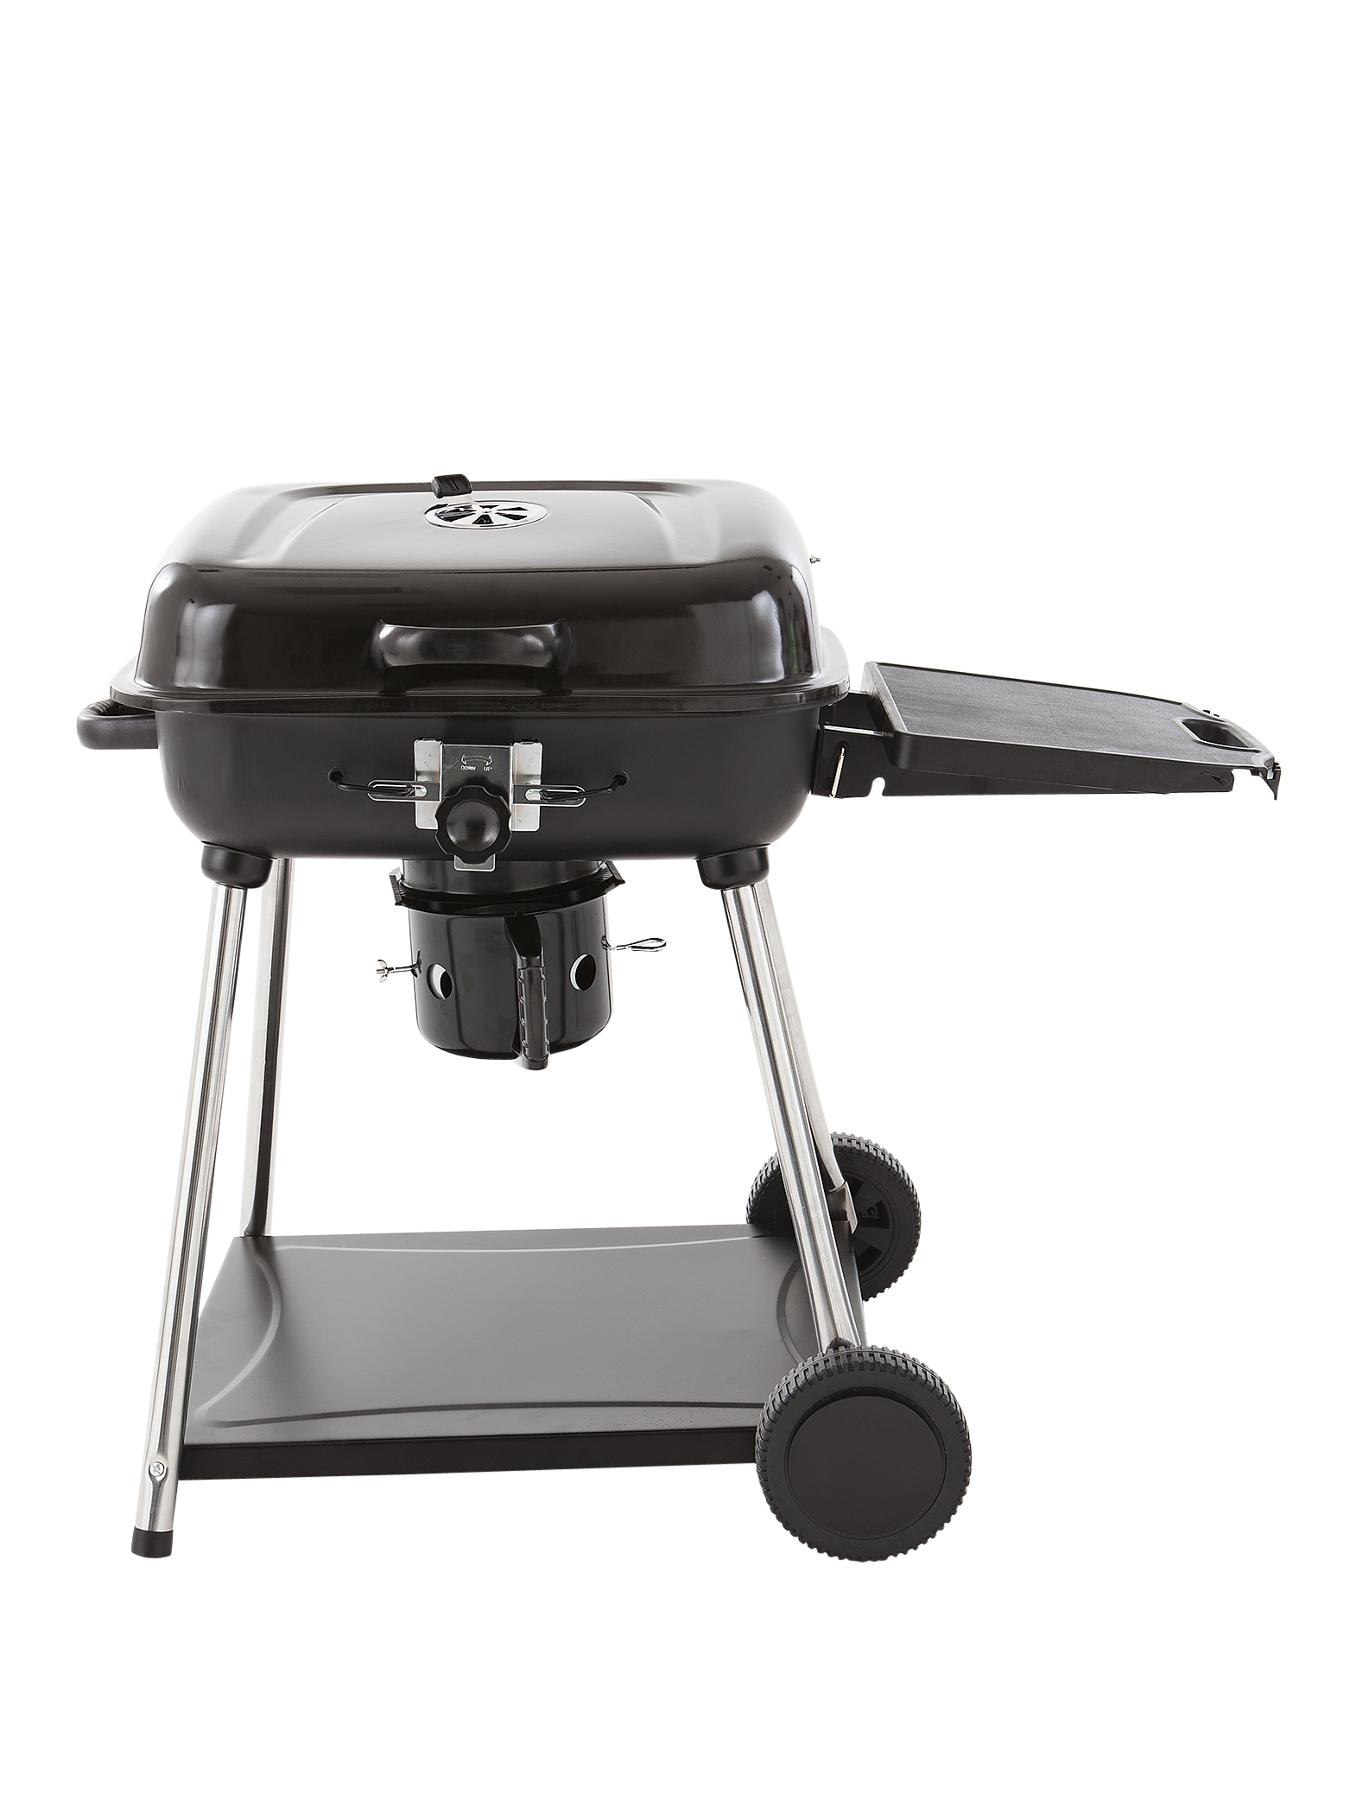 New Grand Charcoal BBQ Grill plus Warming Rack